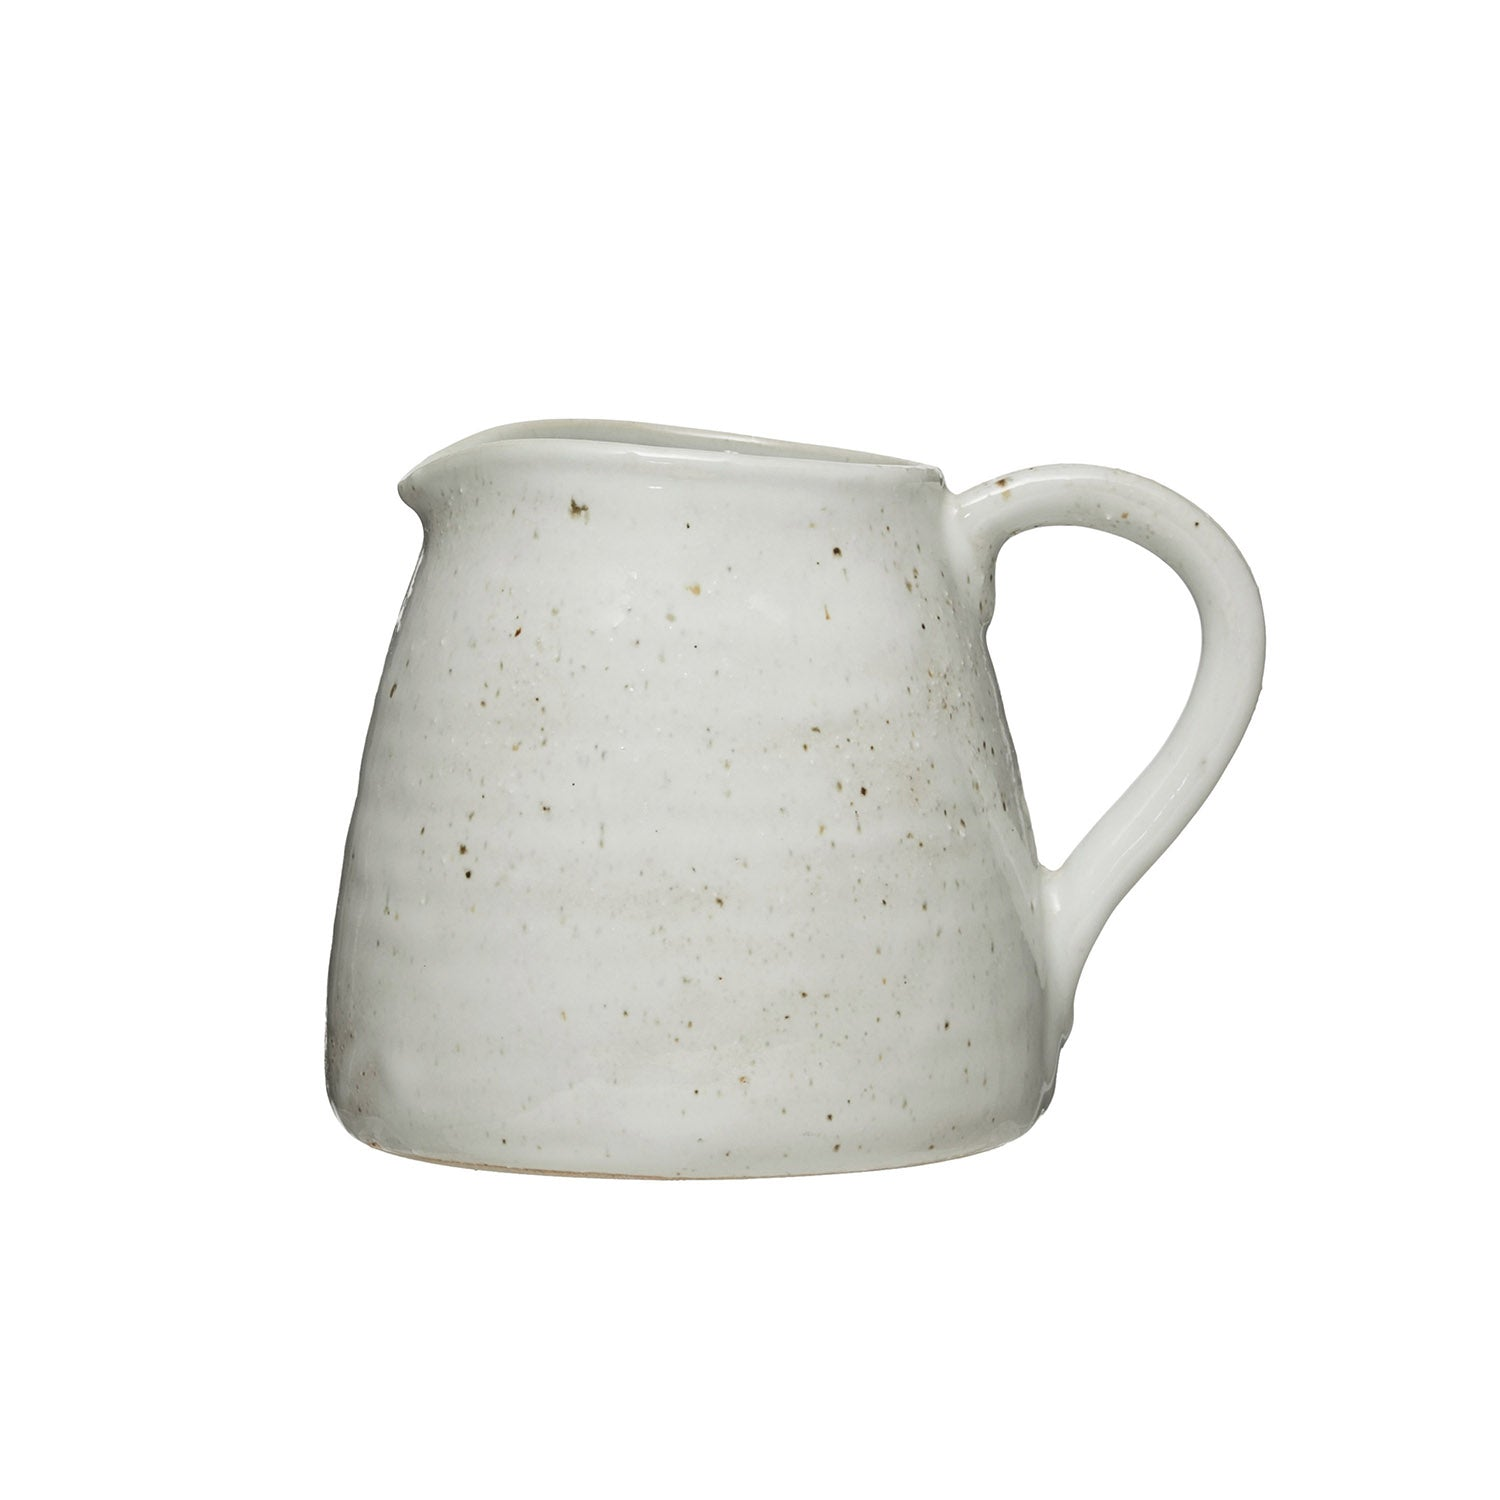 "7-1/4""L x 5""W x 5-3/4""H 32 oz. Stoneware Pitcher, Reactive Glaze, Matte Cream Color, Truck Ship (Each One Will Vary)"